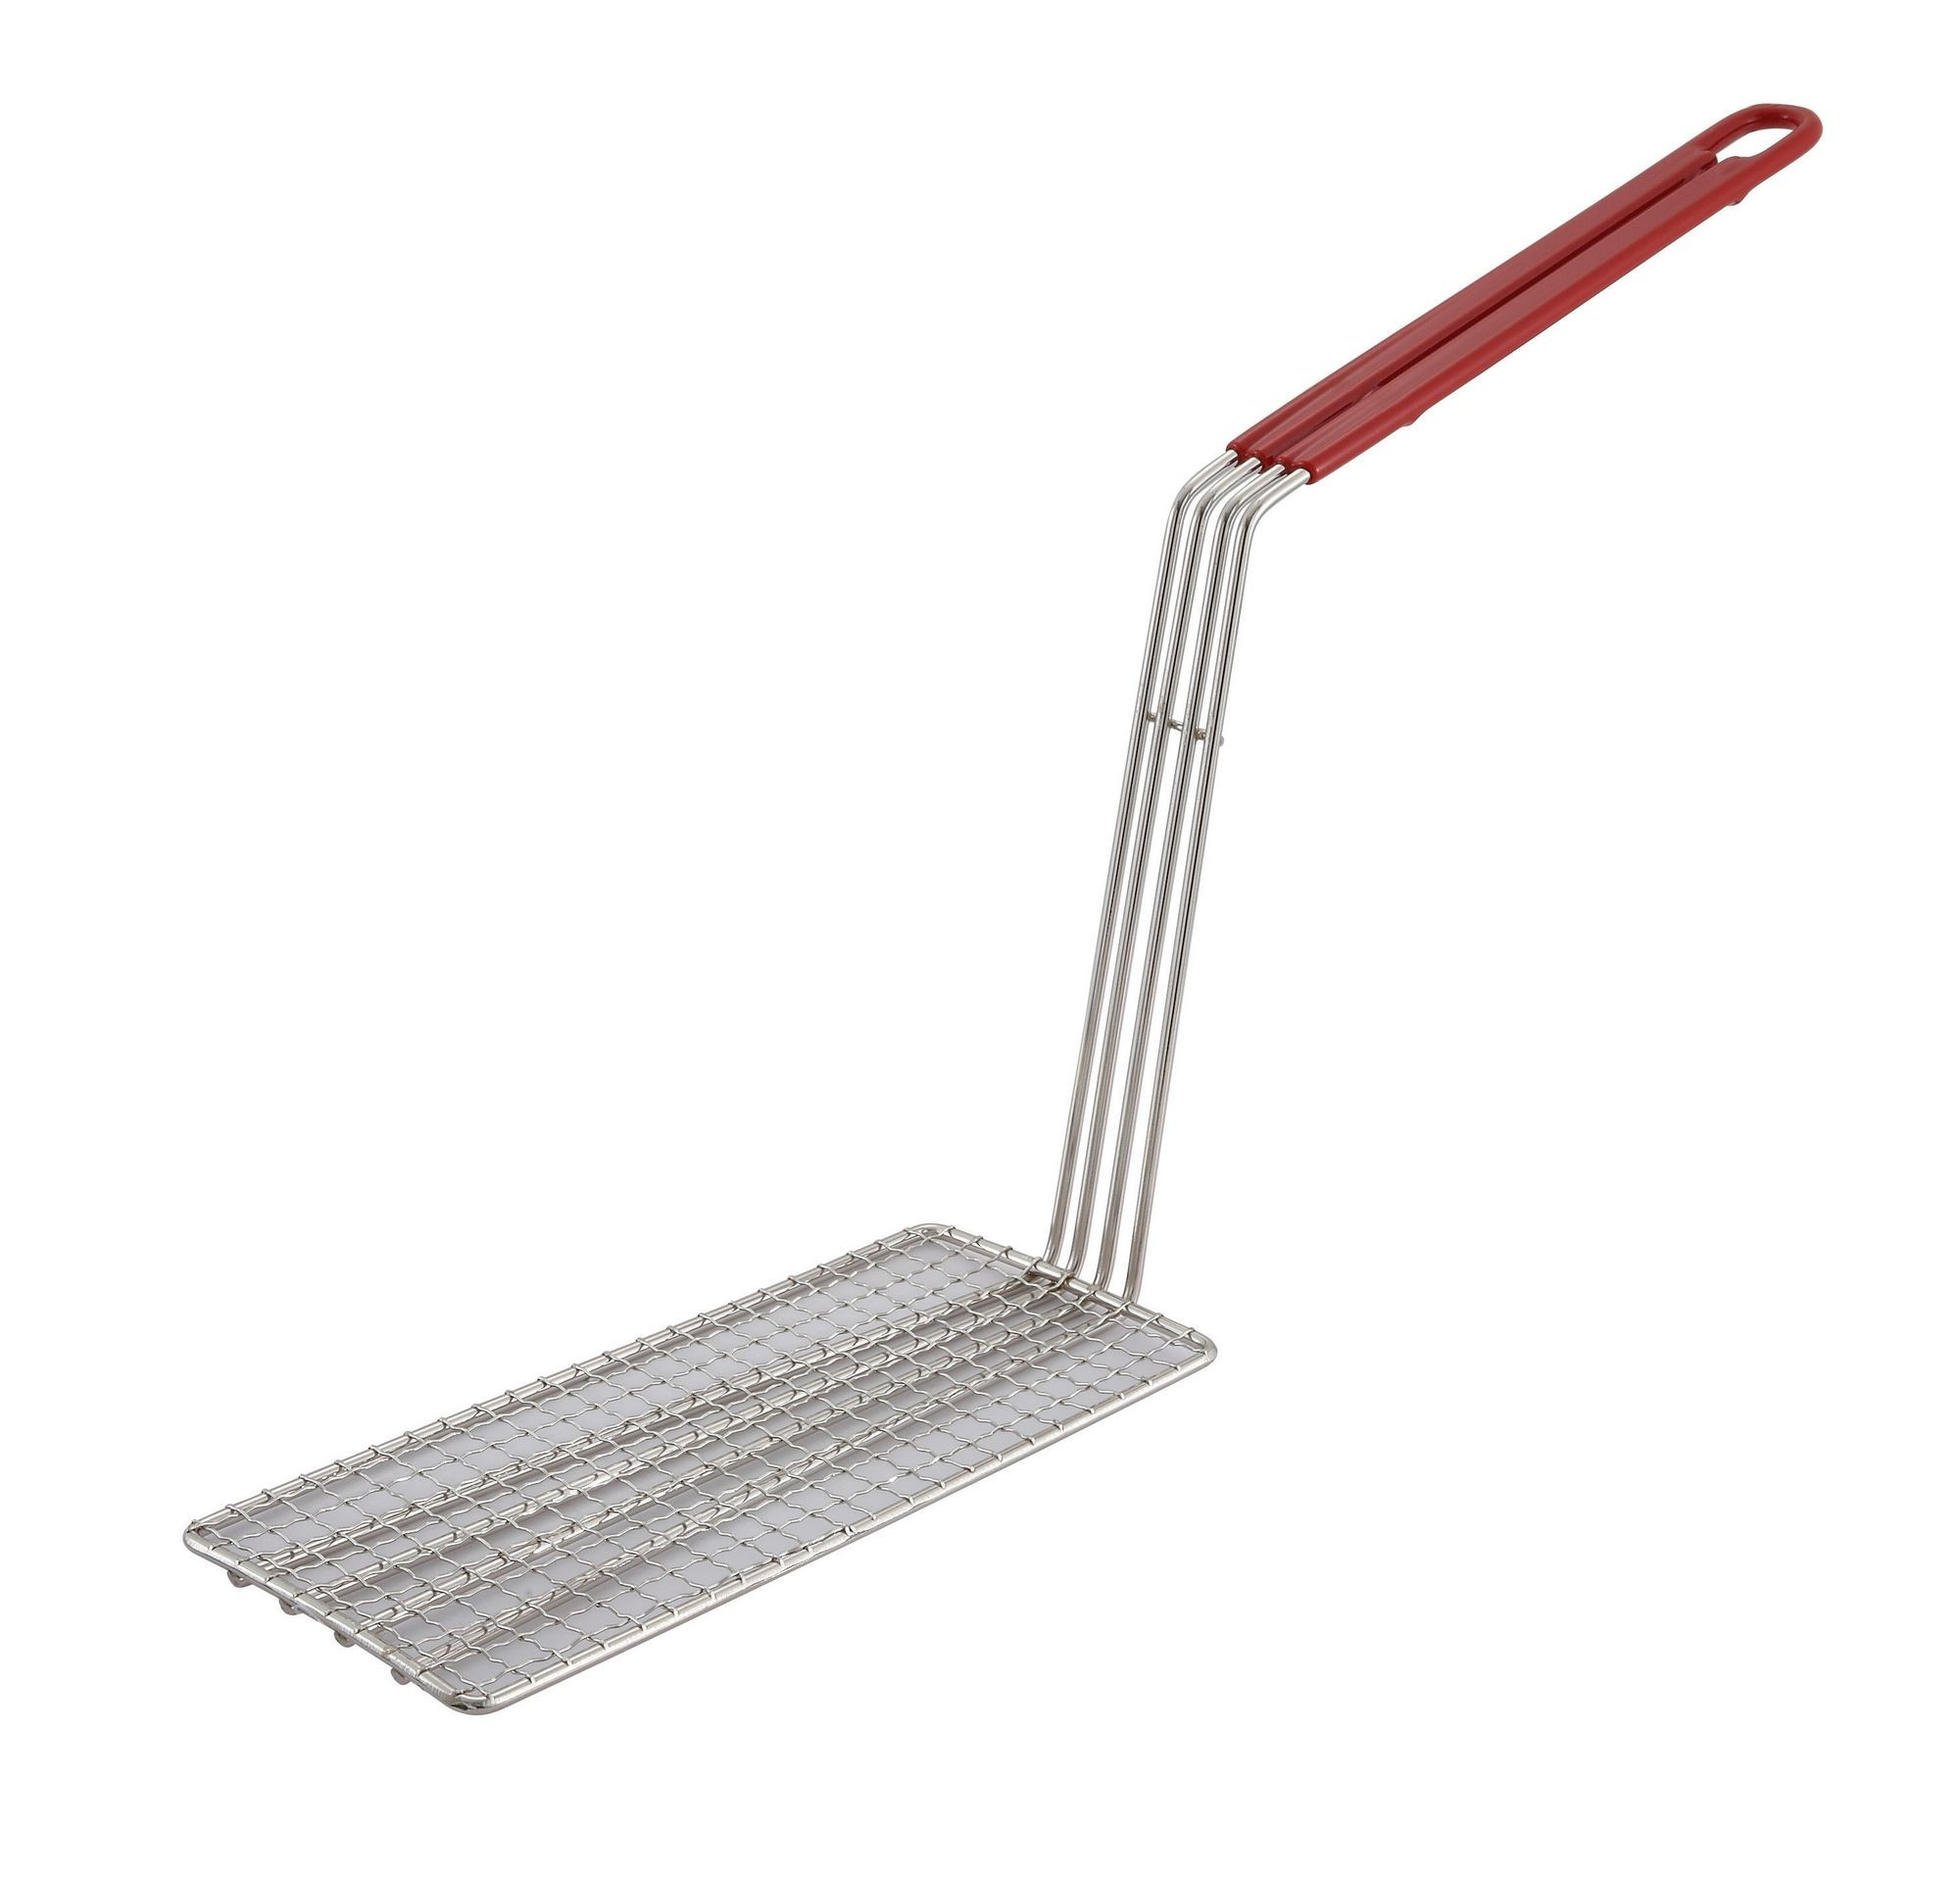 Winco FB-PB Fry Basket Press for Fry Basket FB-30